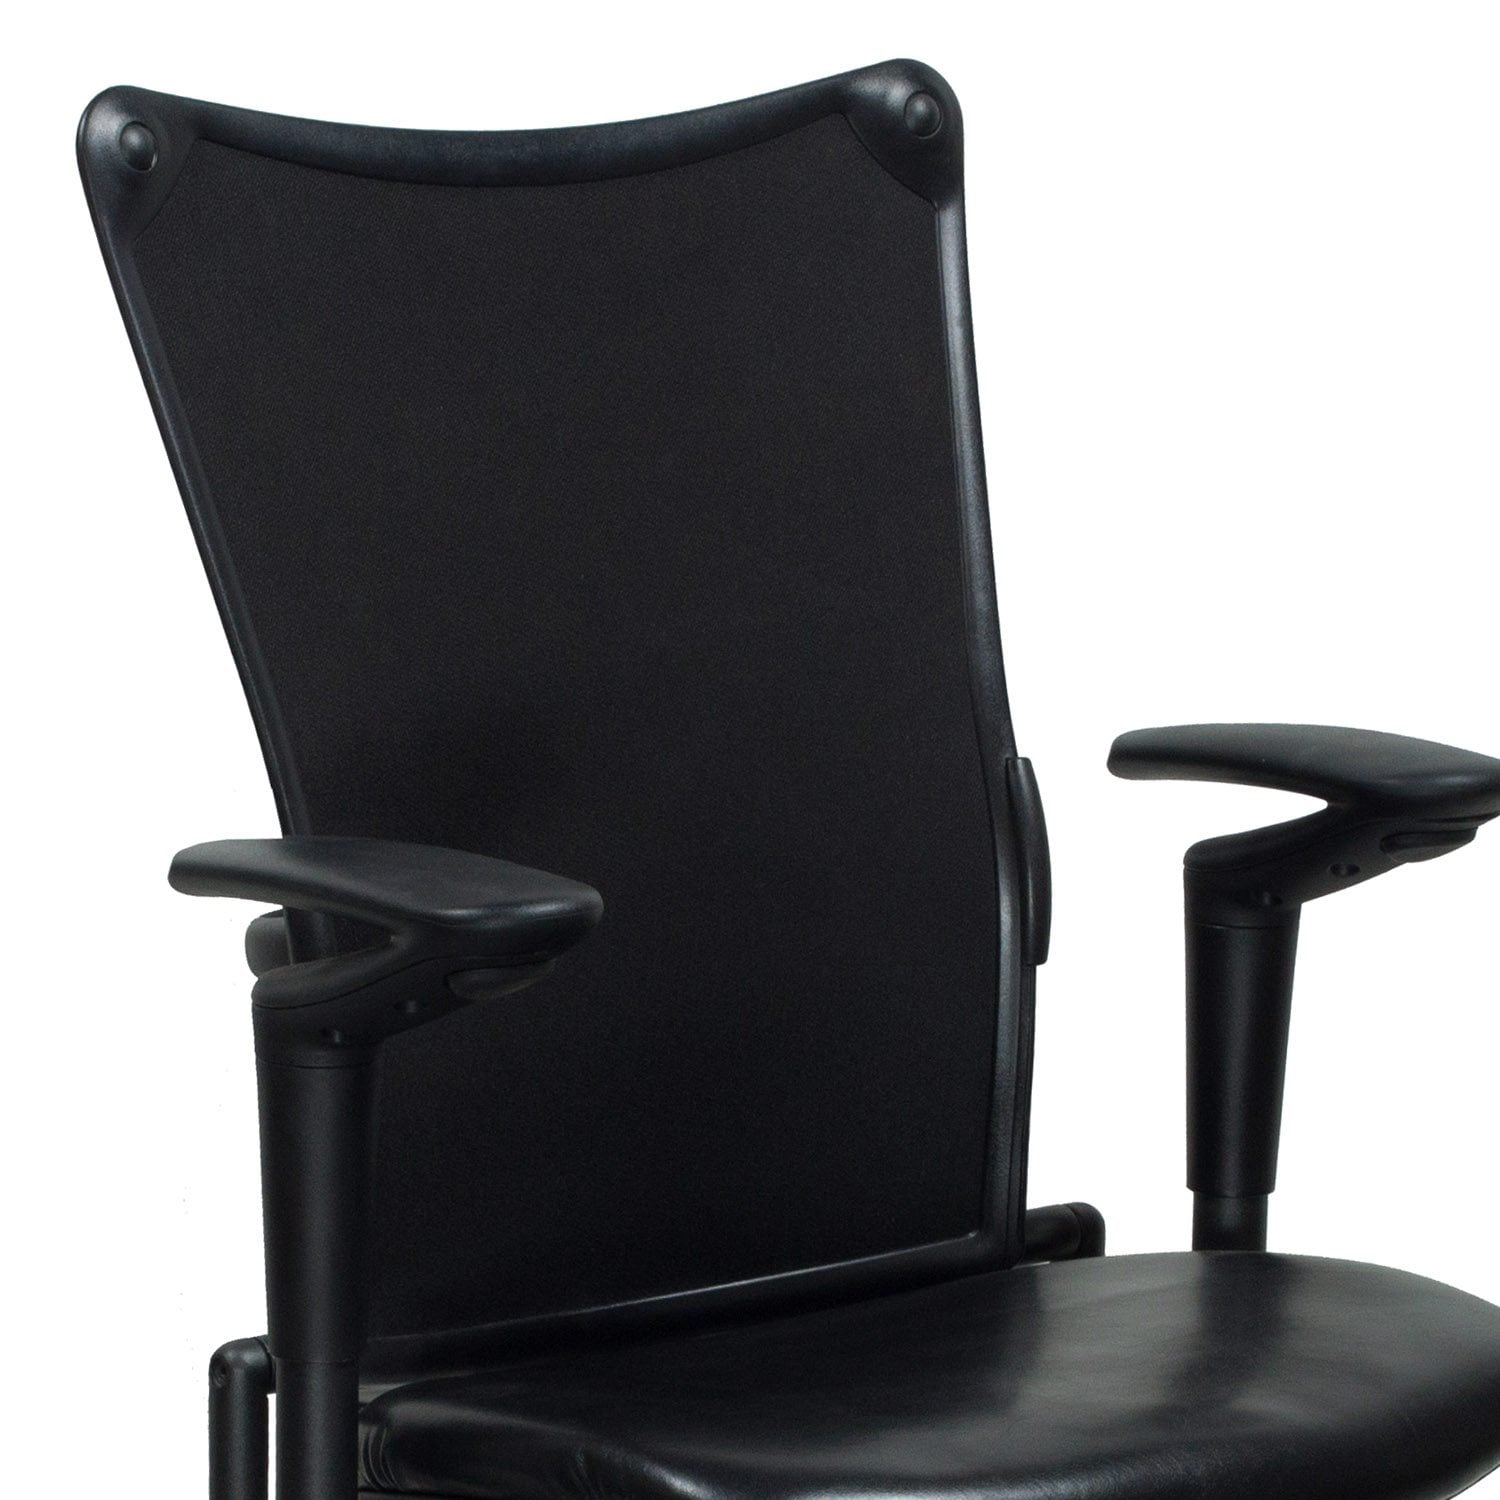 allsteel task chair folding cane 19 used with leather seat black